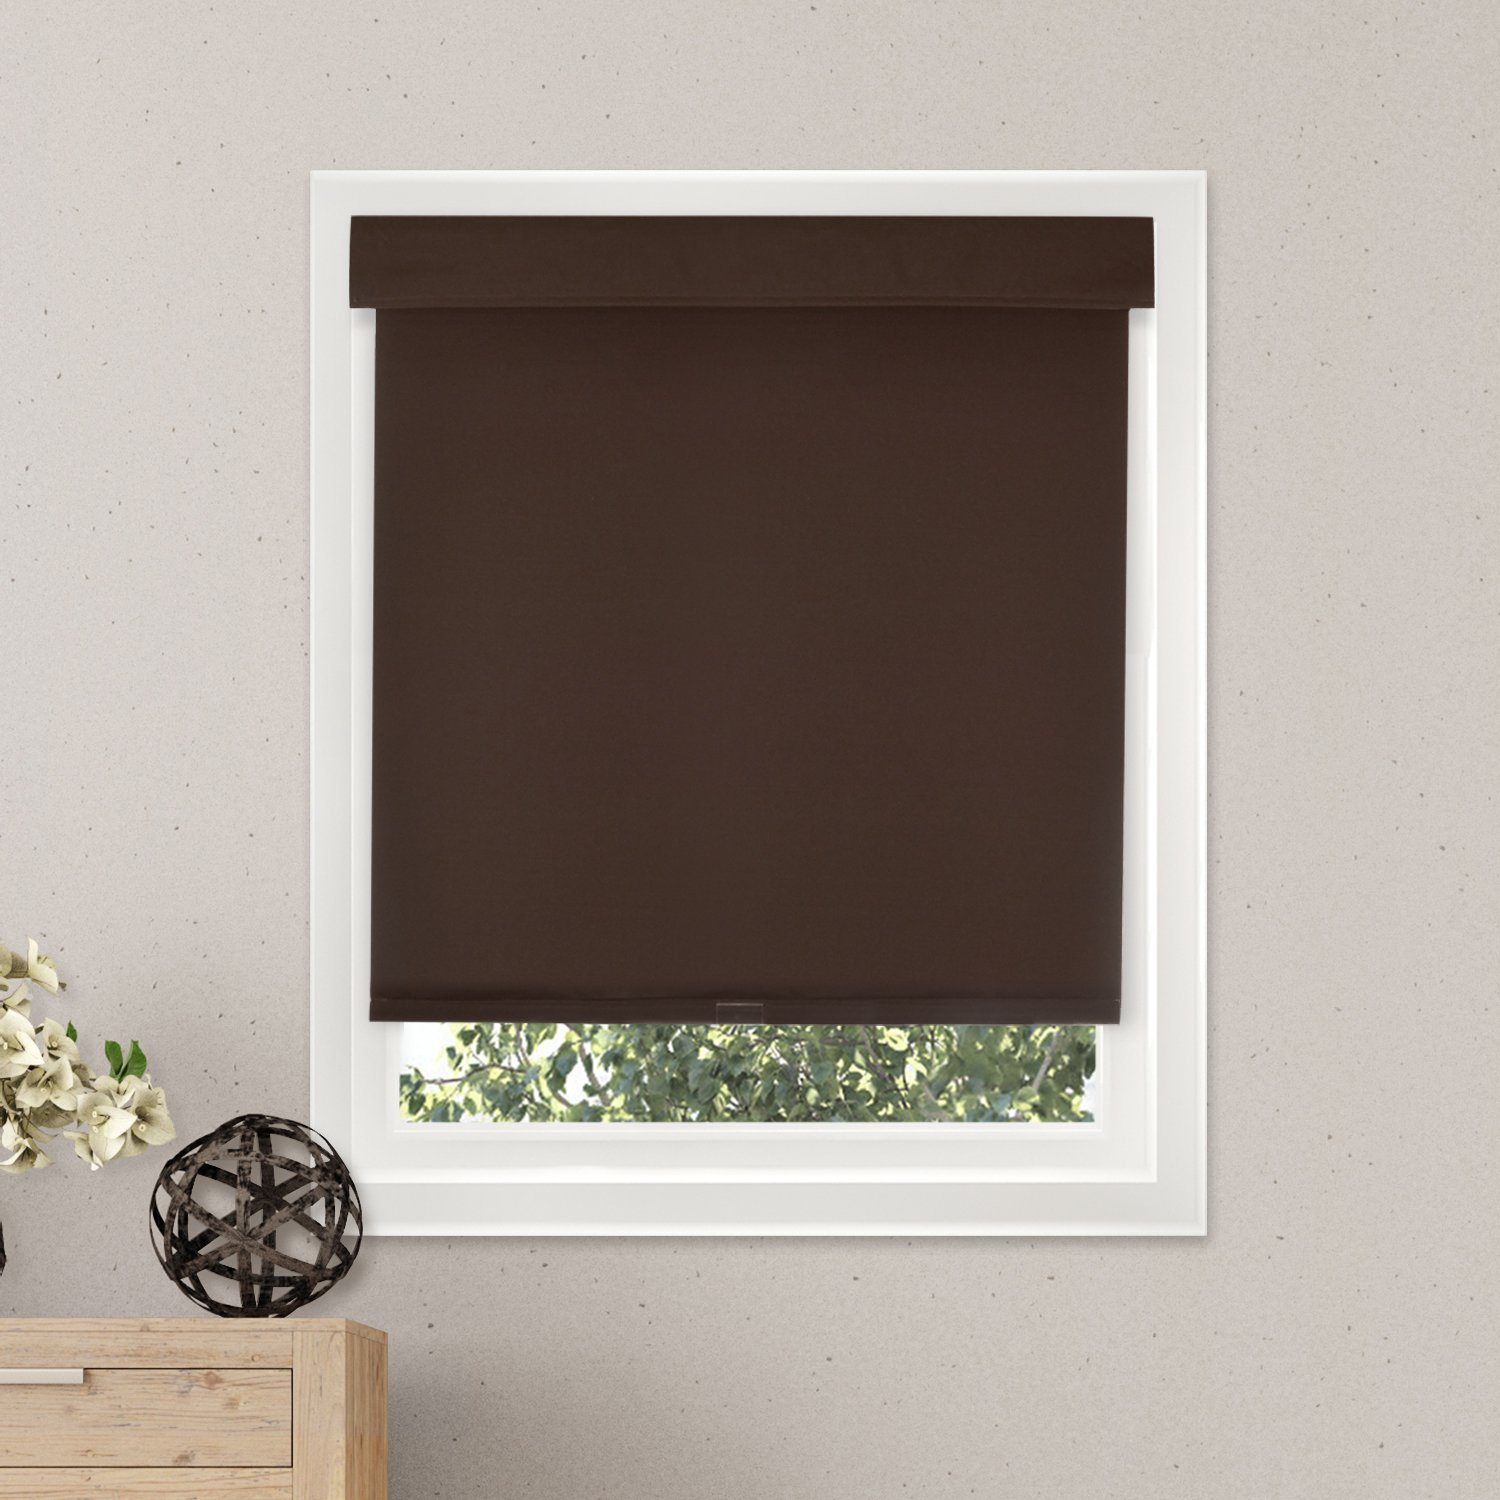 Chicology Free-Stop Cordless Roller Shades, No Tug Privacy Window Blind, Mountain Almond (Thermal) - 23W X 72H RSMA2372